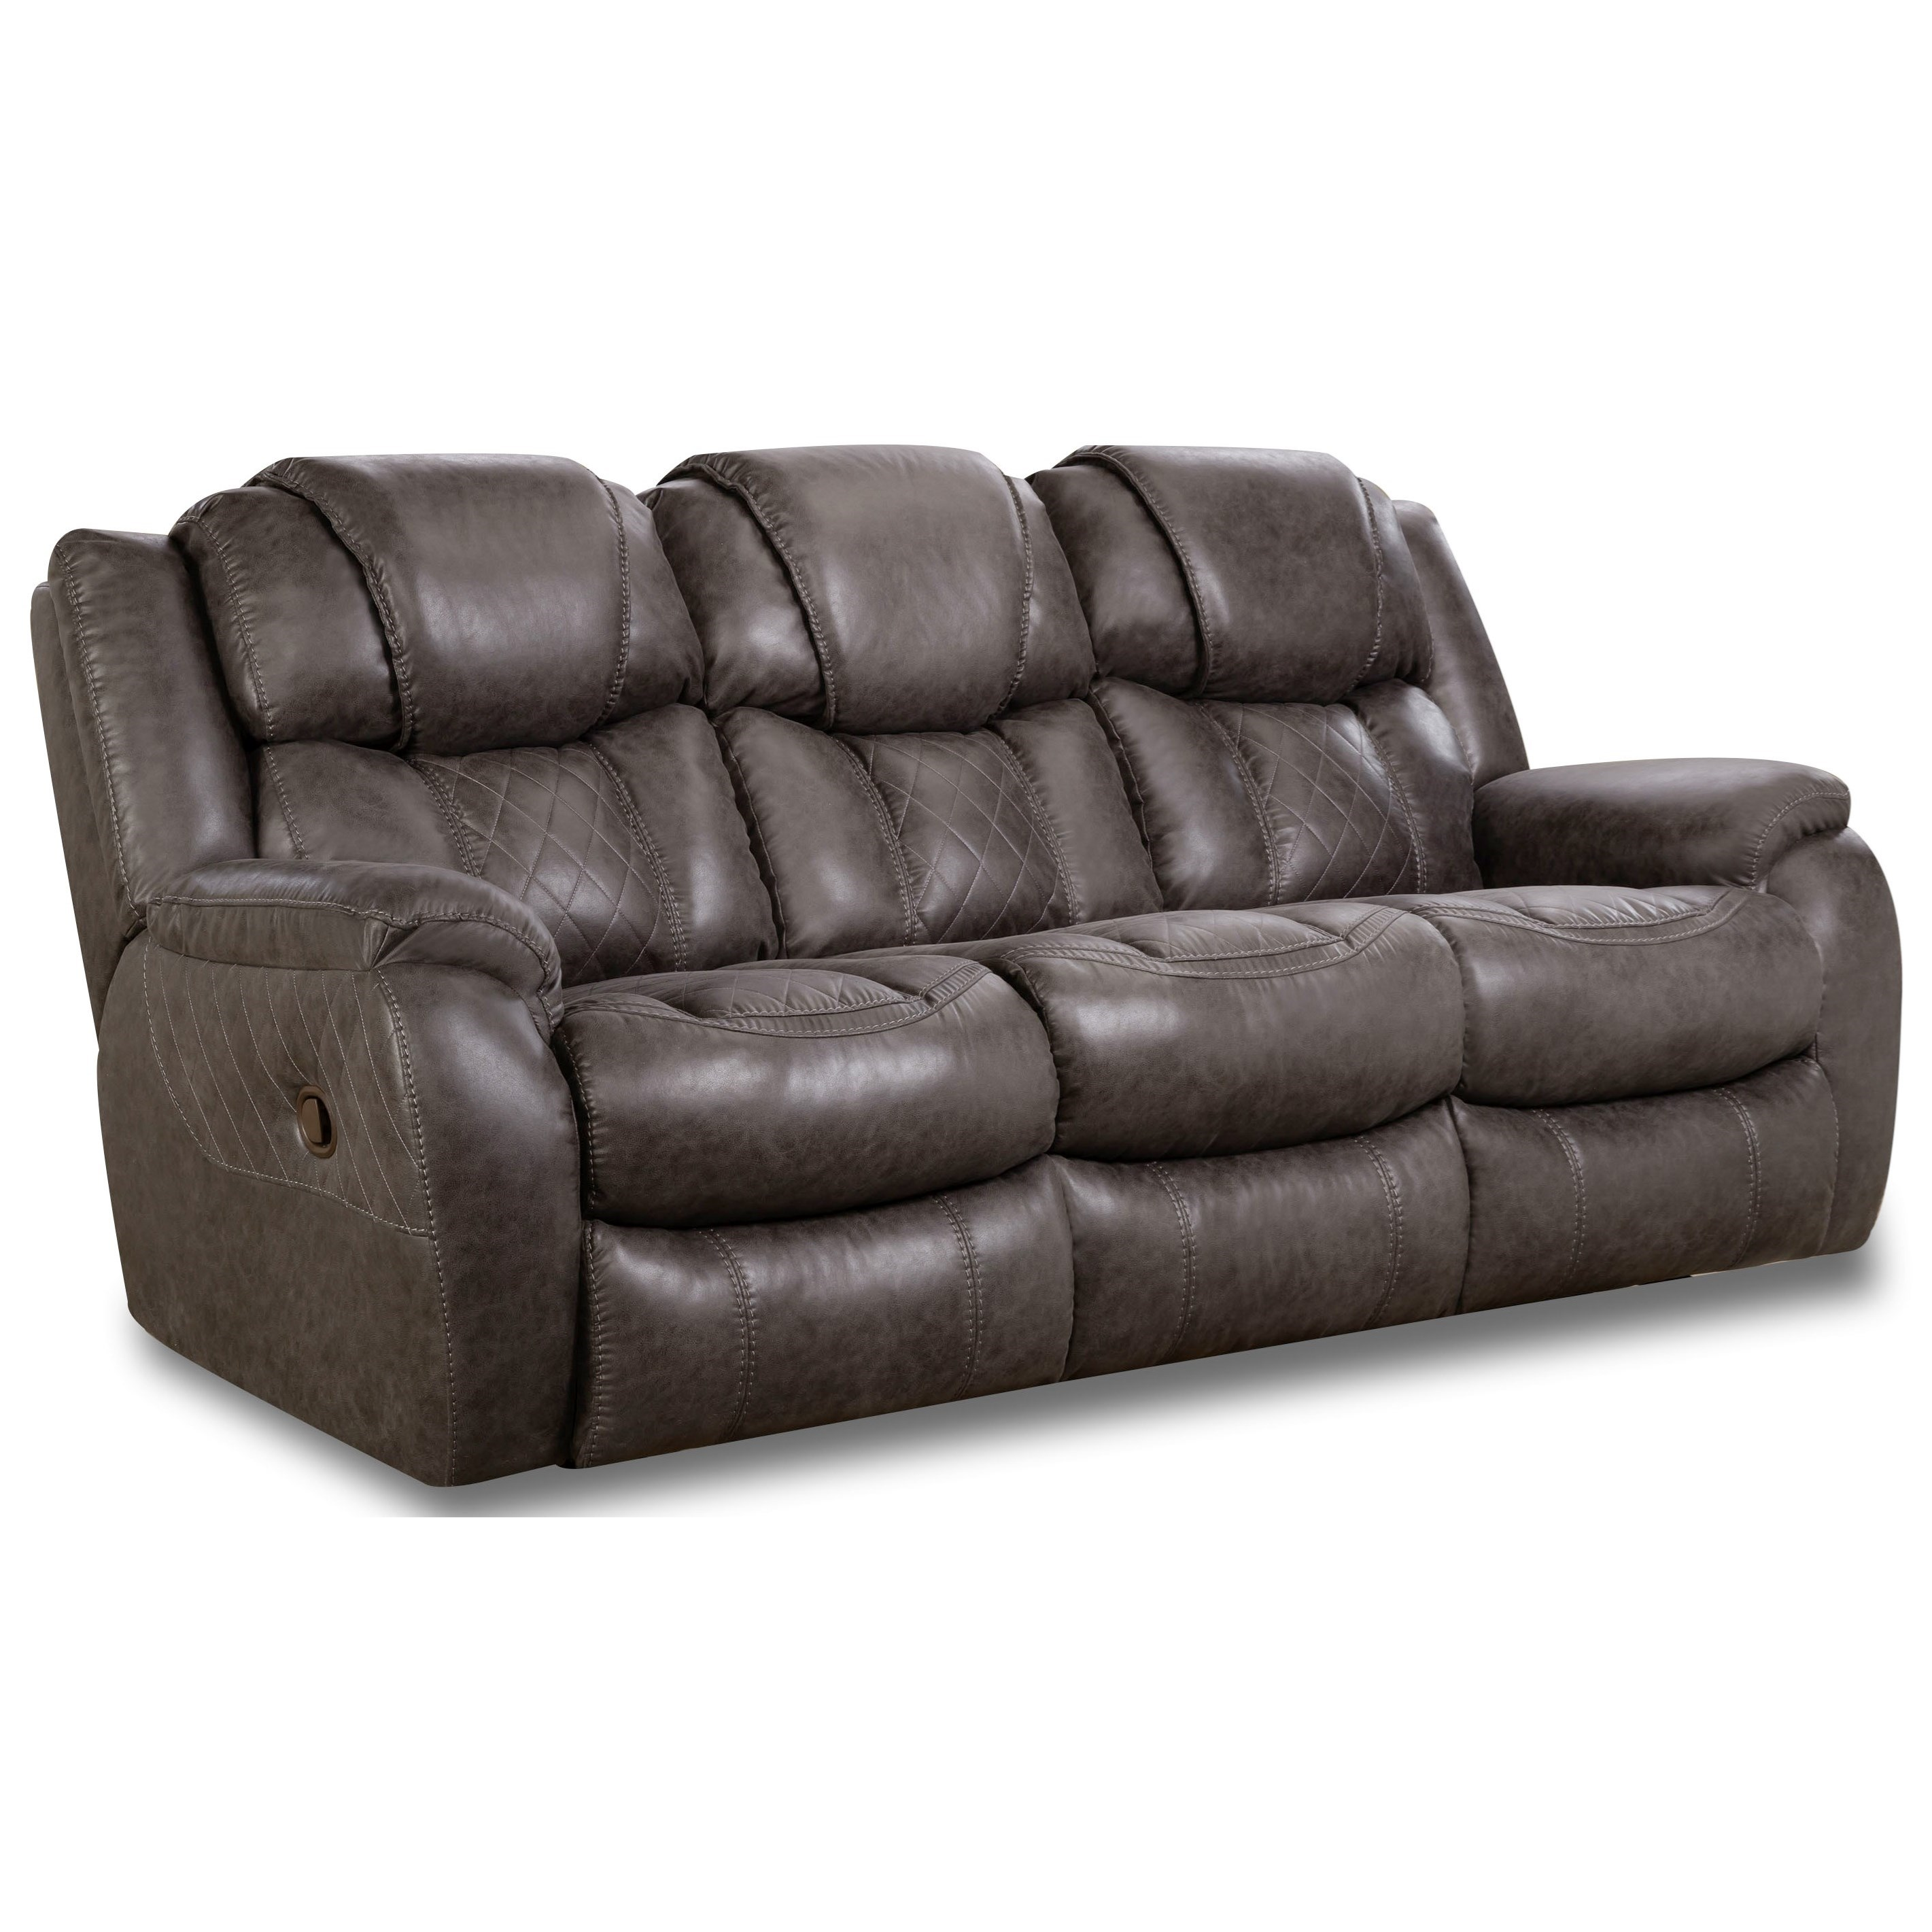 Marlin Double Reclining Sofa by HomeStretch at Standard Furniture